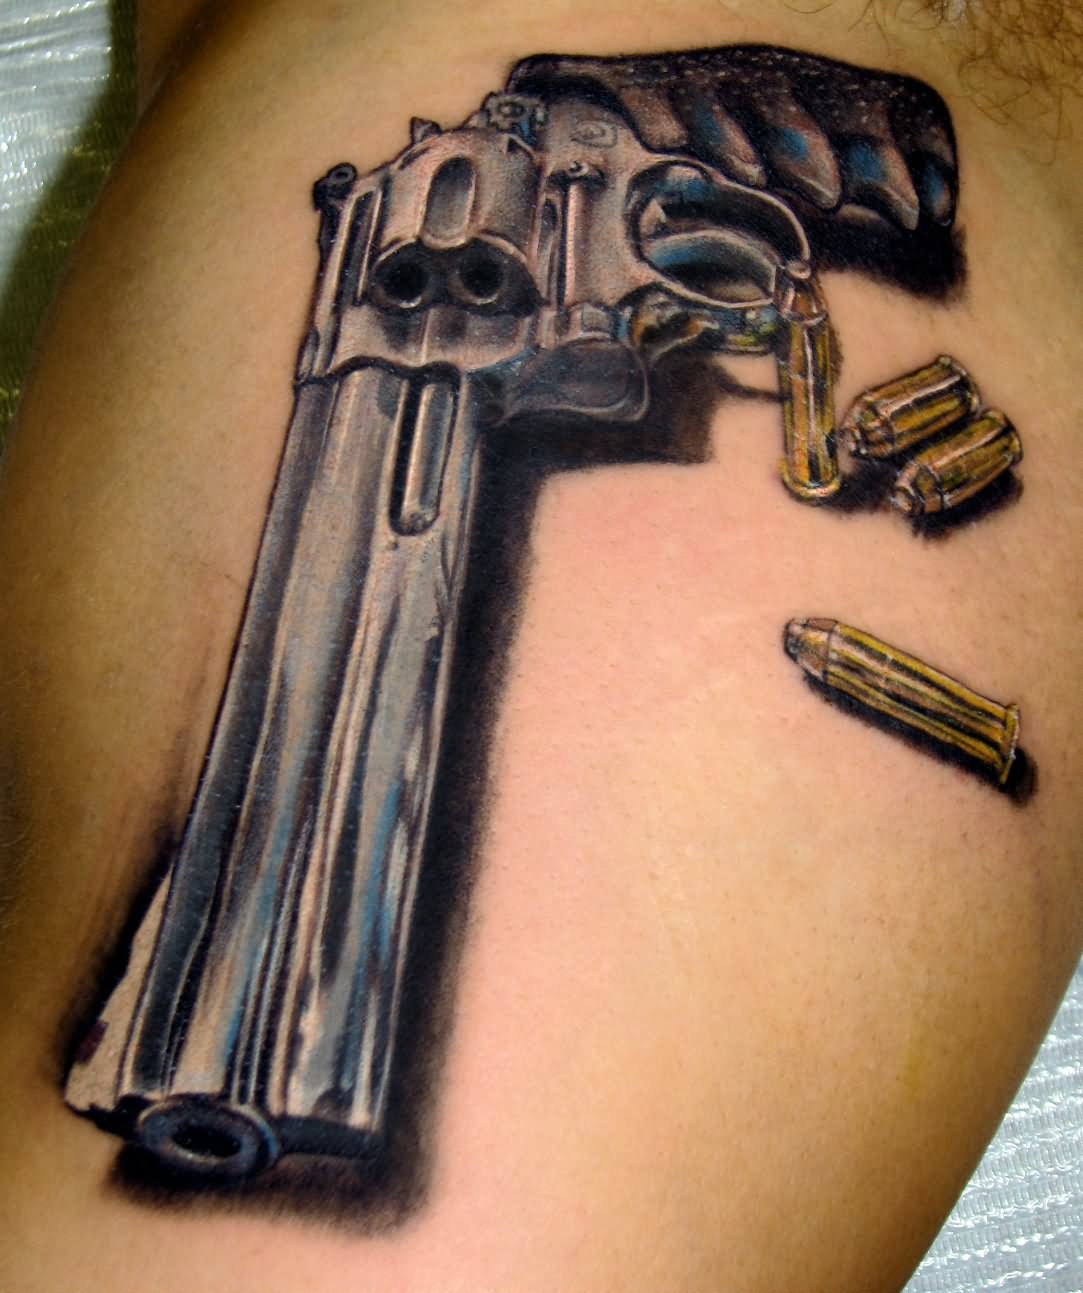 9784c6d6a Hand Pistol and Bullets Tattoo by Stefano Alcantara